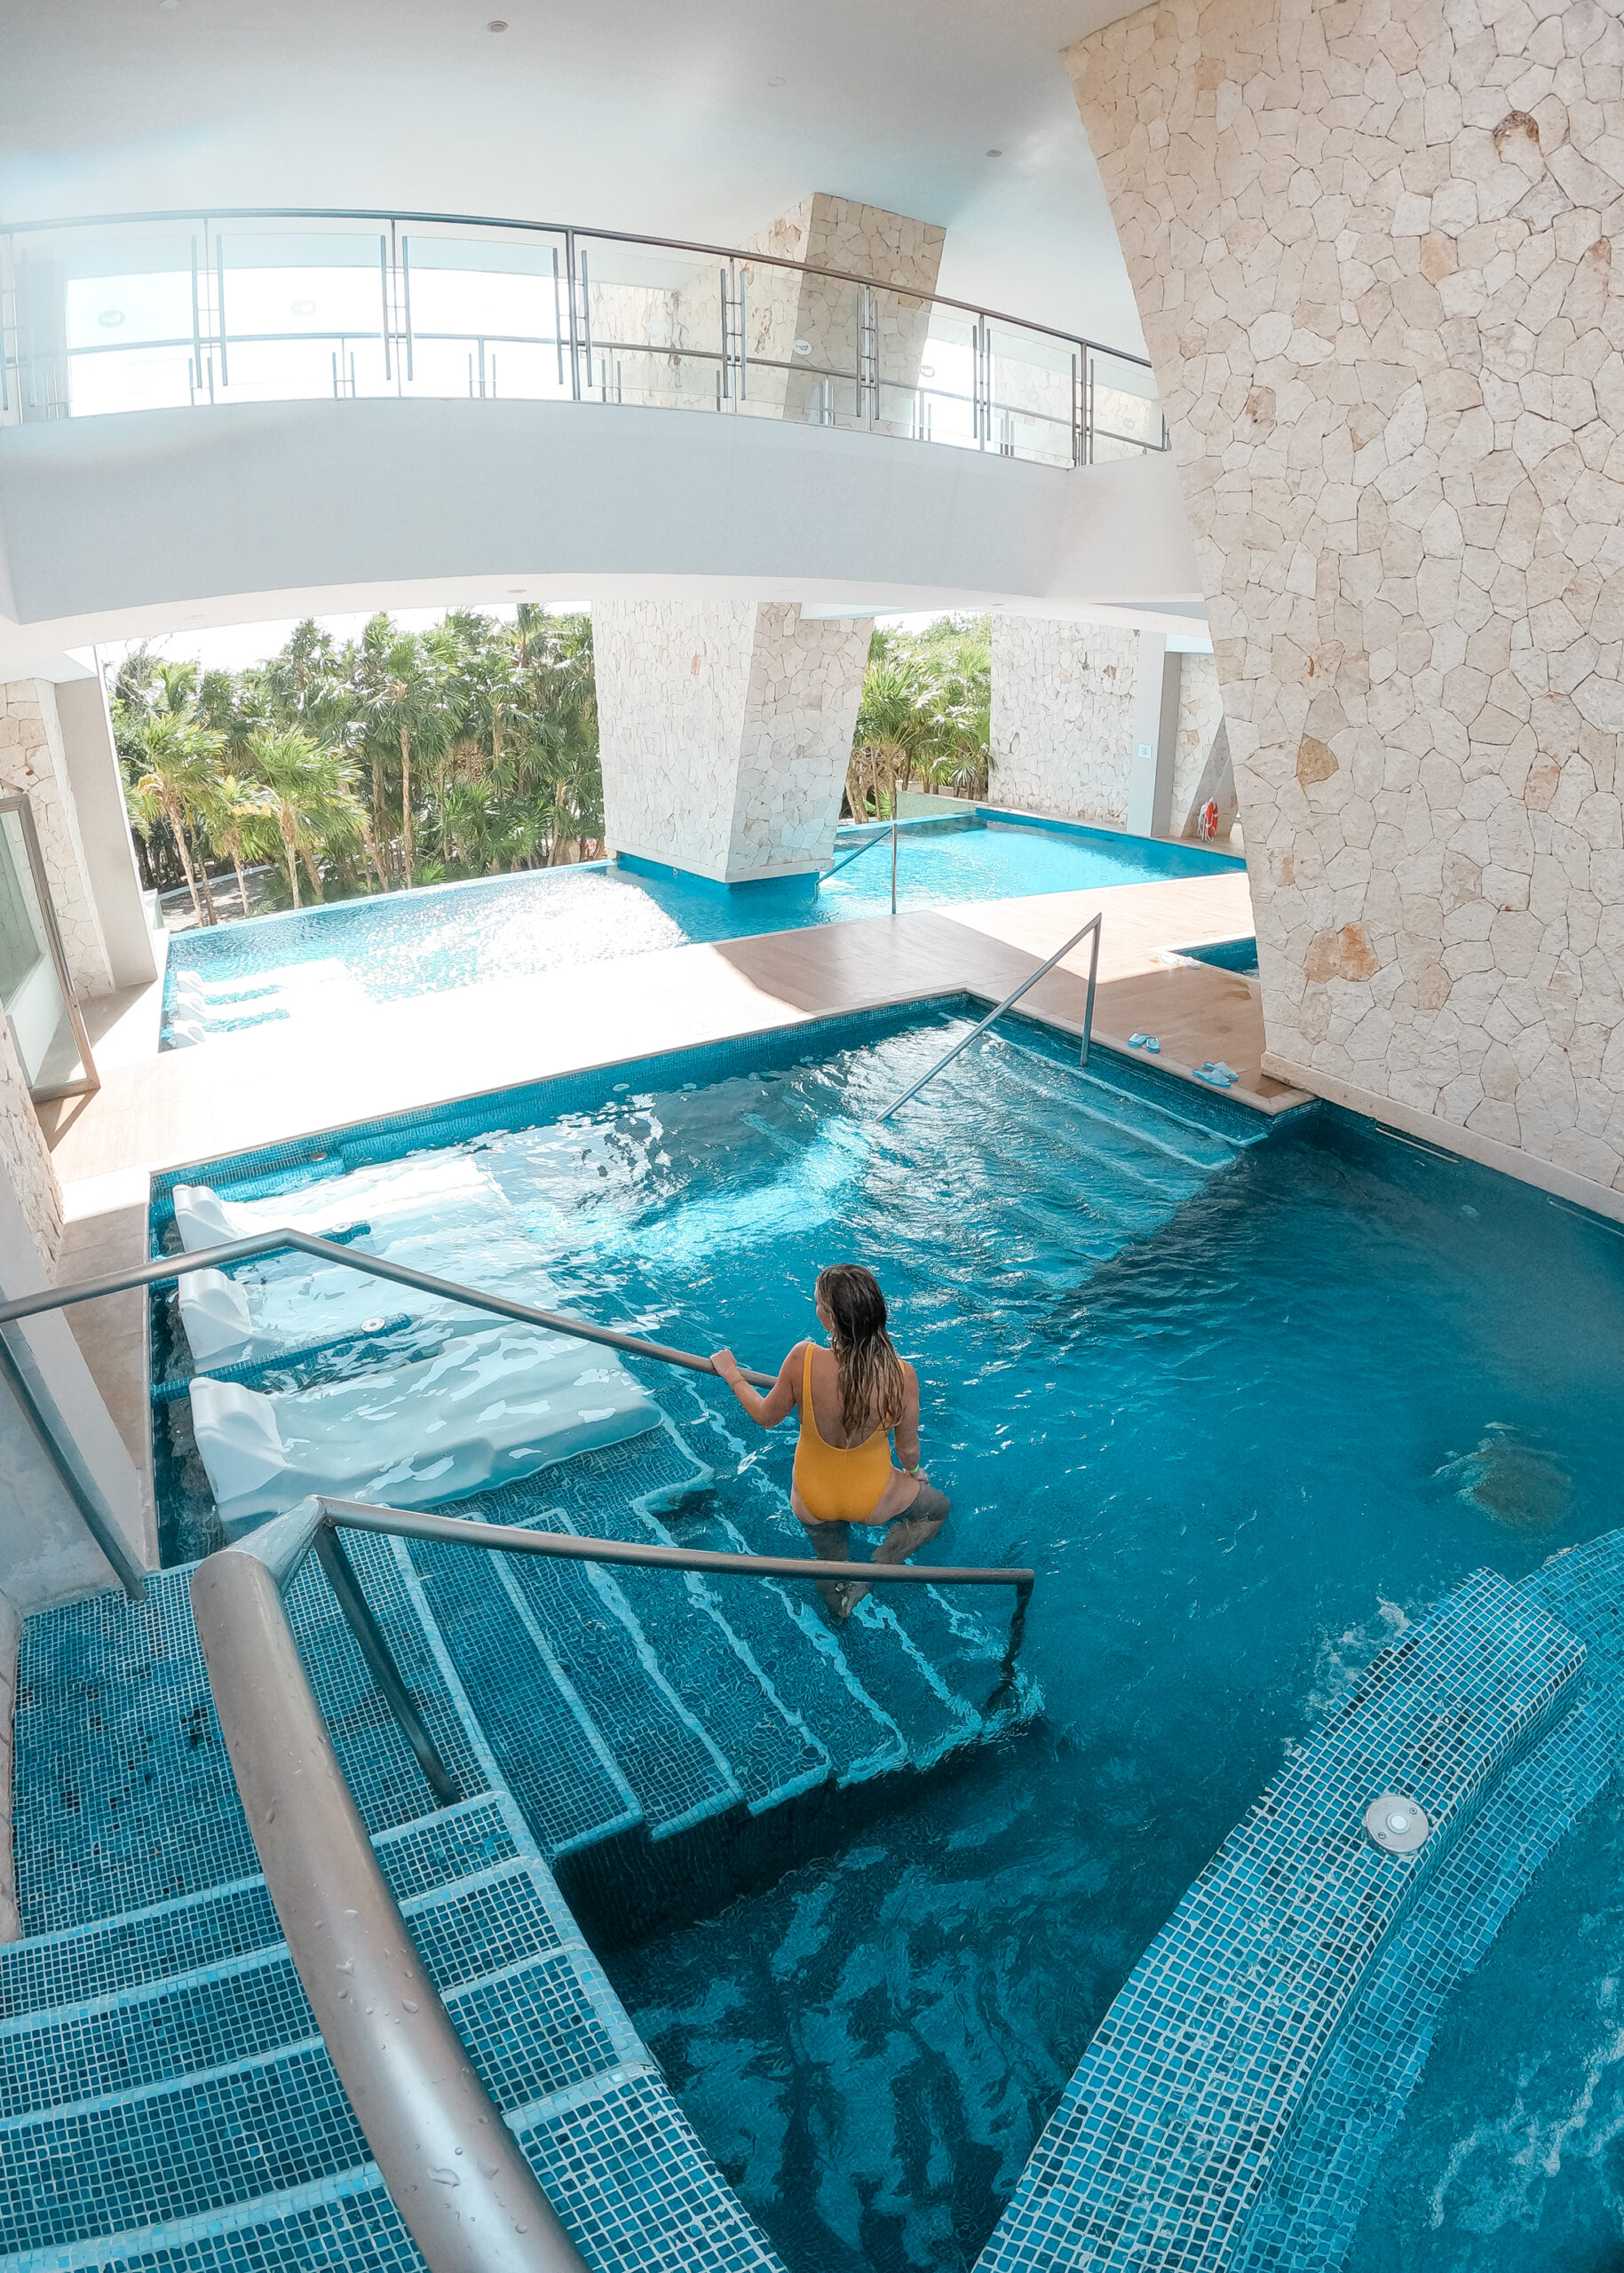 the largest spa in the riviera maya at Grand Sirenis #spaday #visitmexico #mexicoretreat